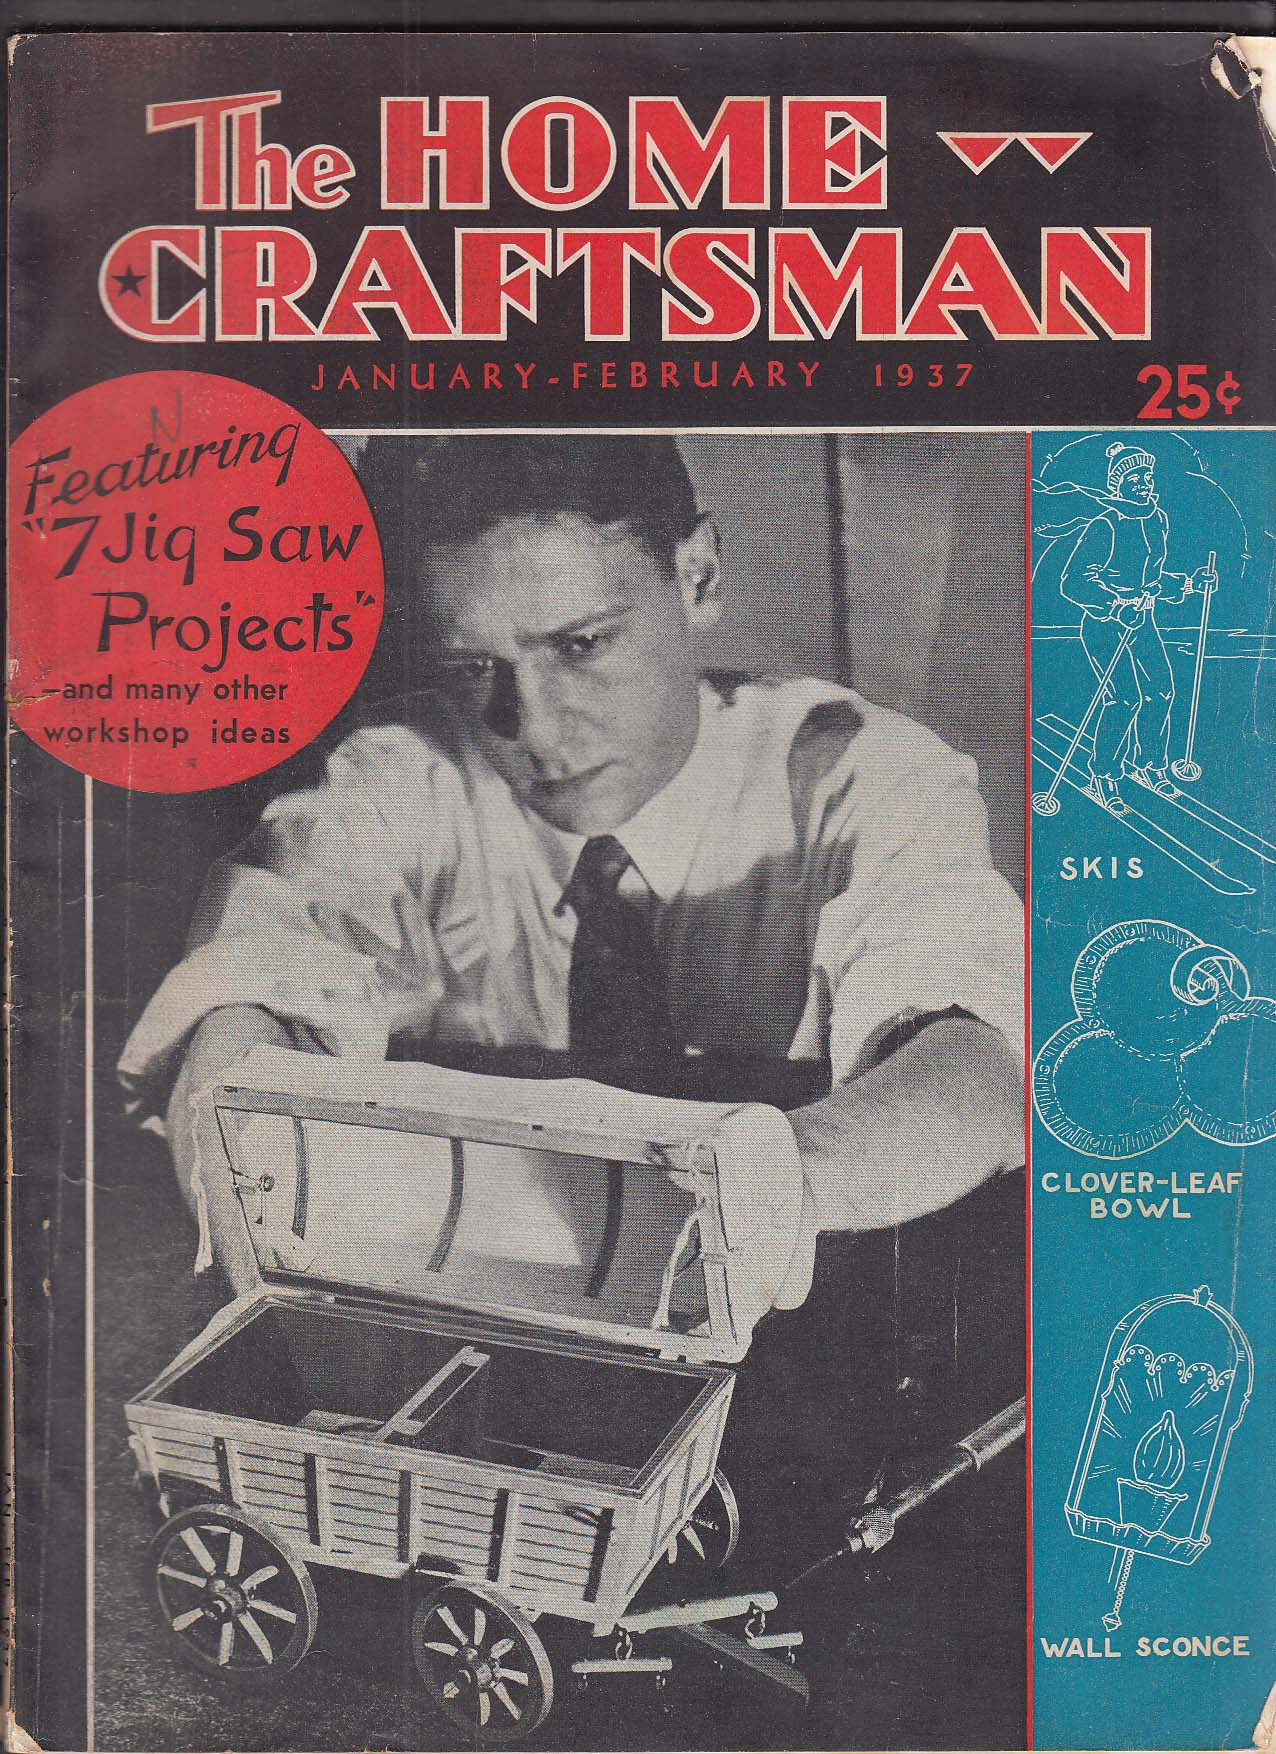 Image for HOME CRAFTSMAN Jig Saw projects + 1-2 1937